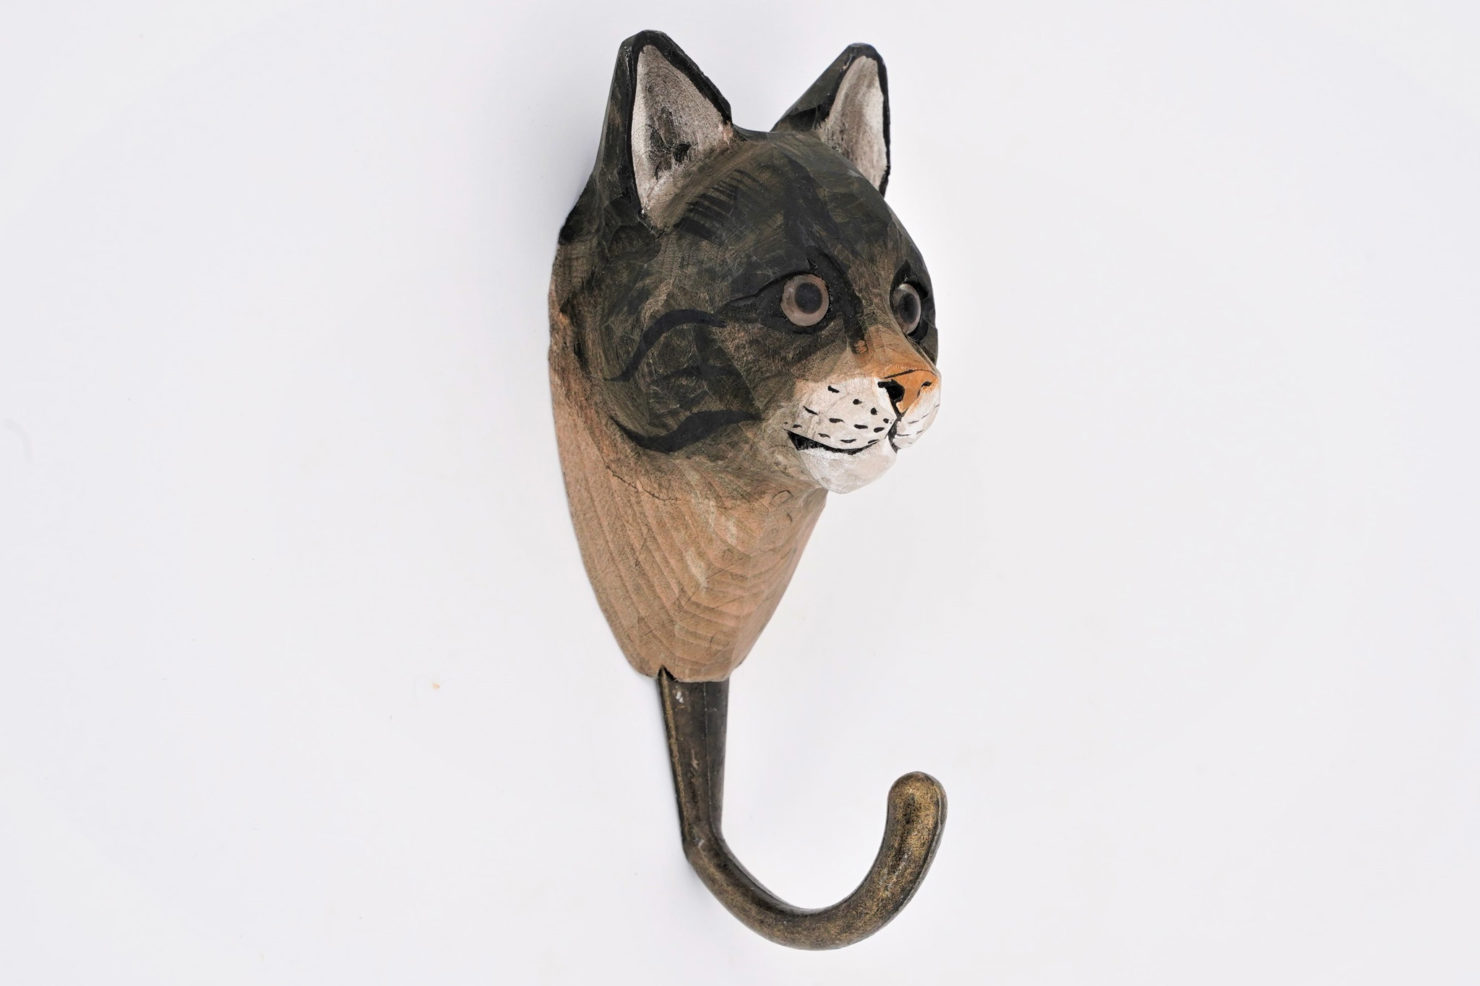 HAMDCARVED HOOK HOUSE CAT - WILDLIFE GARDEN